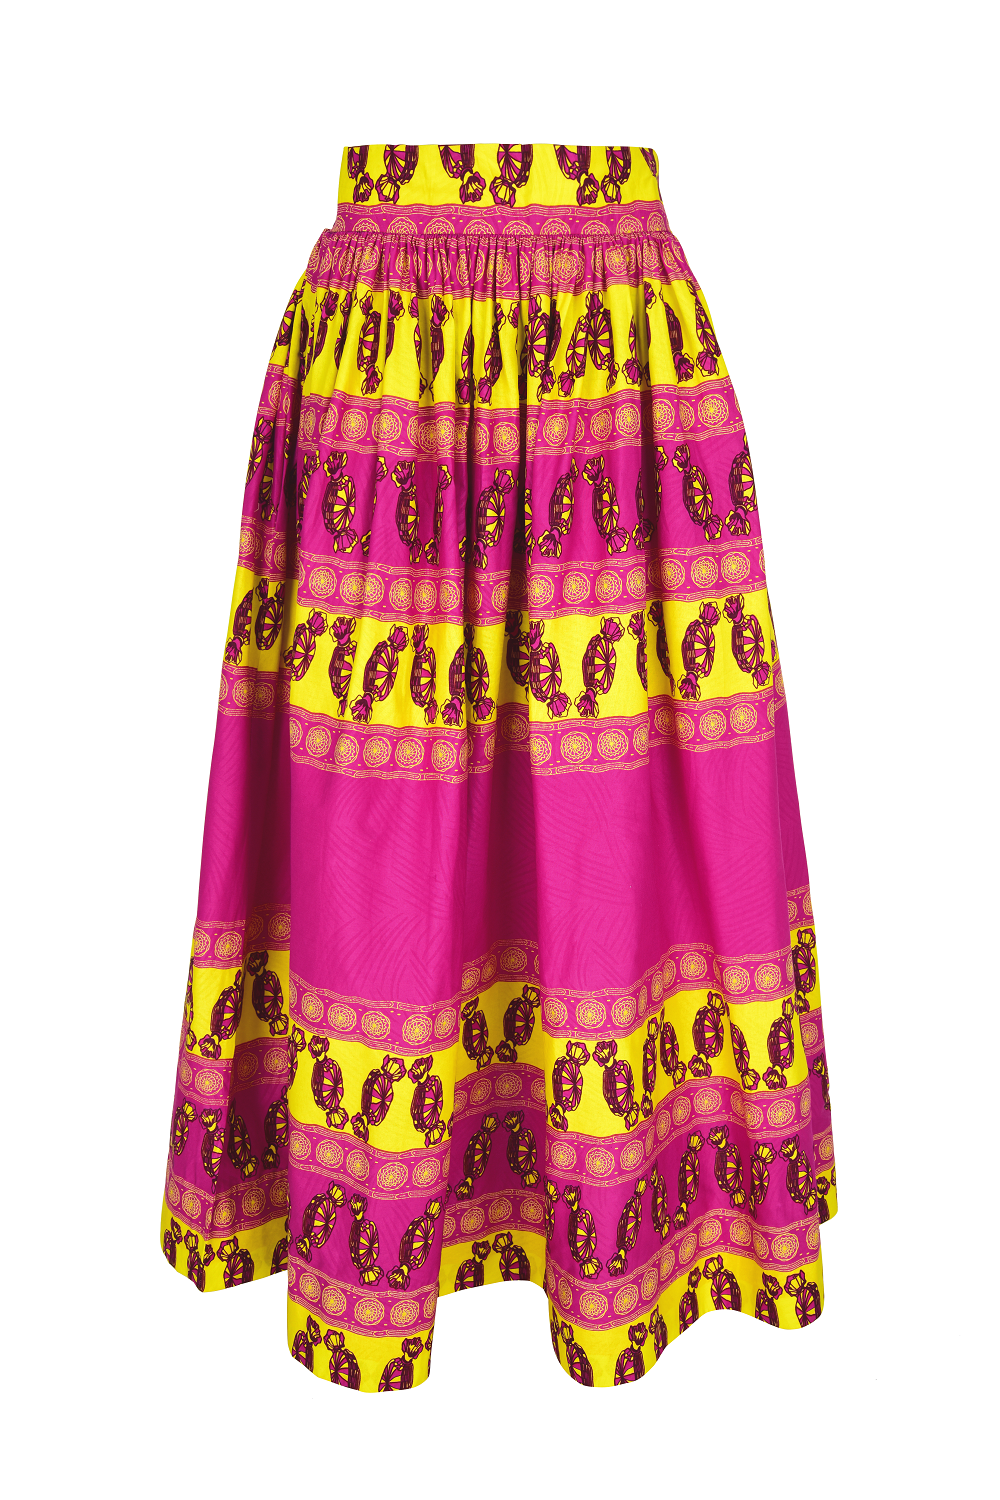 African Osoua maxi skirt for women.